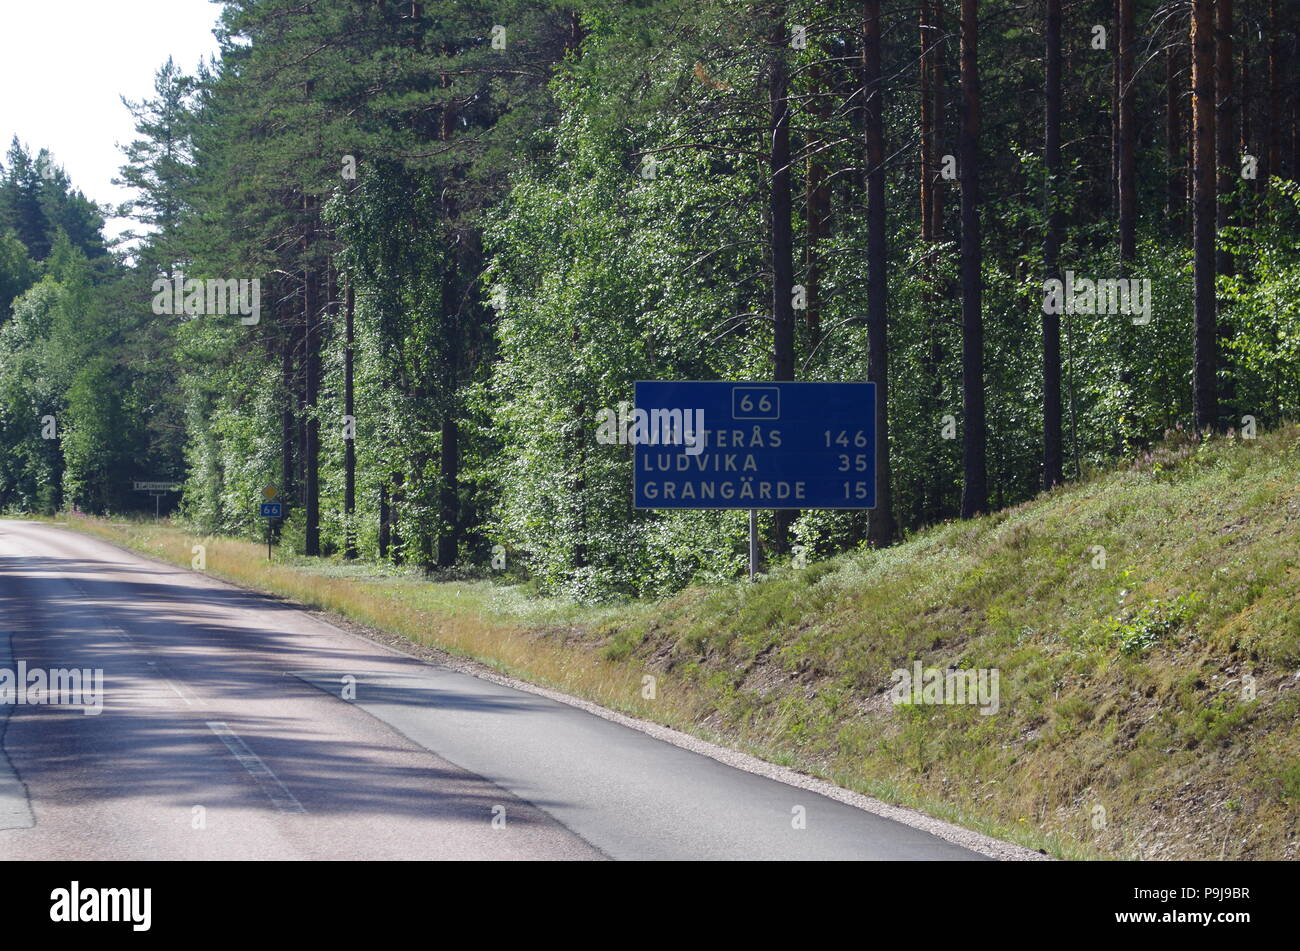 Road signs on Route 66 in the province of Dalarna in Sweden - Stock Image